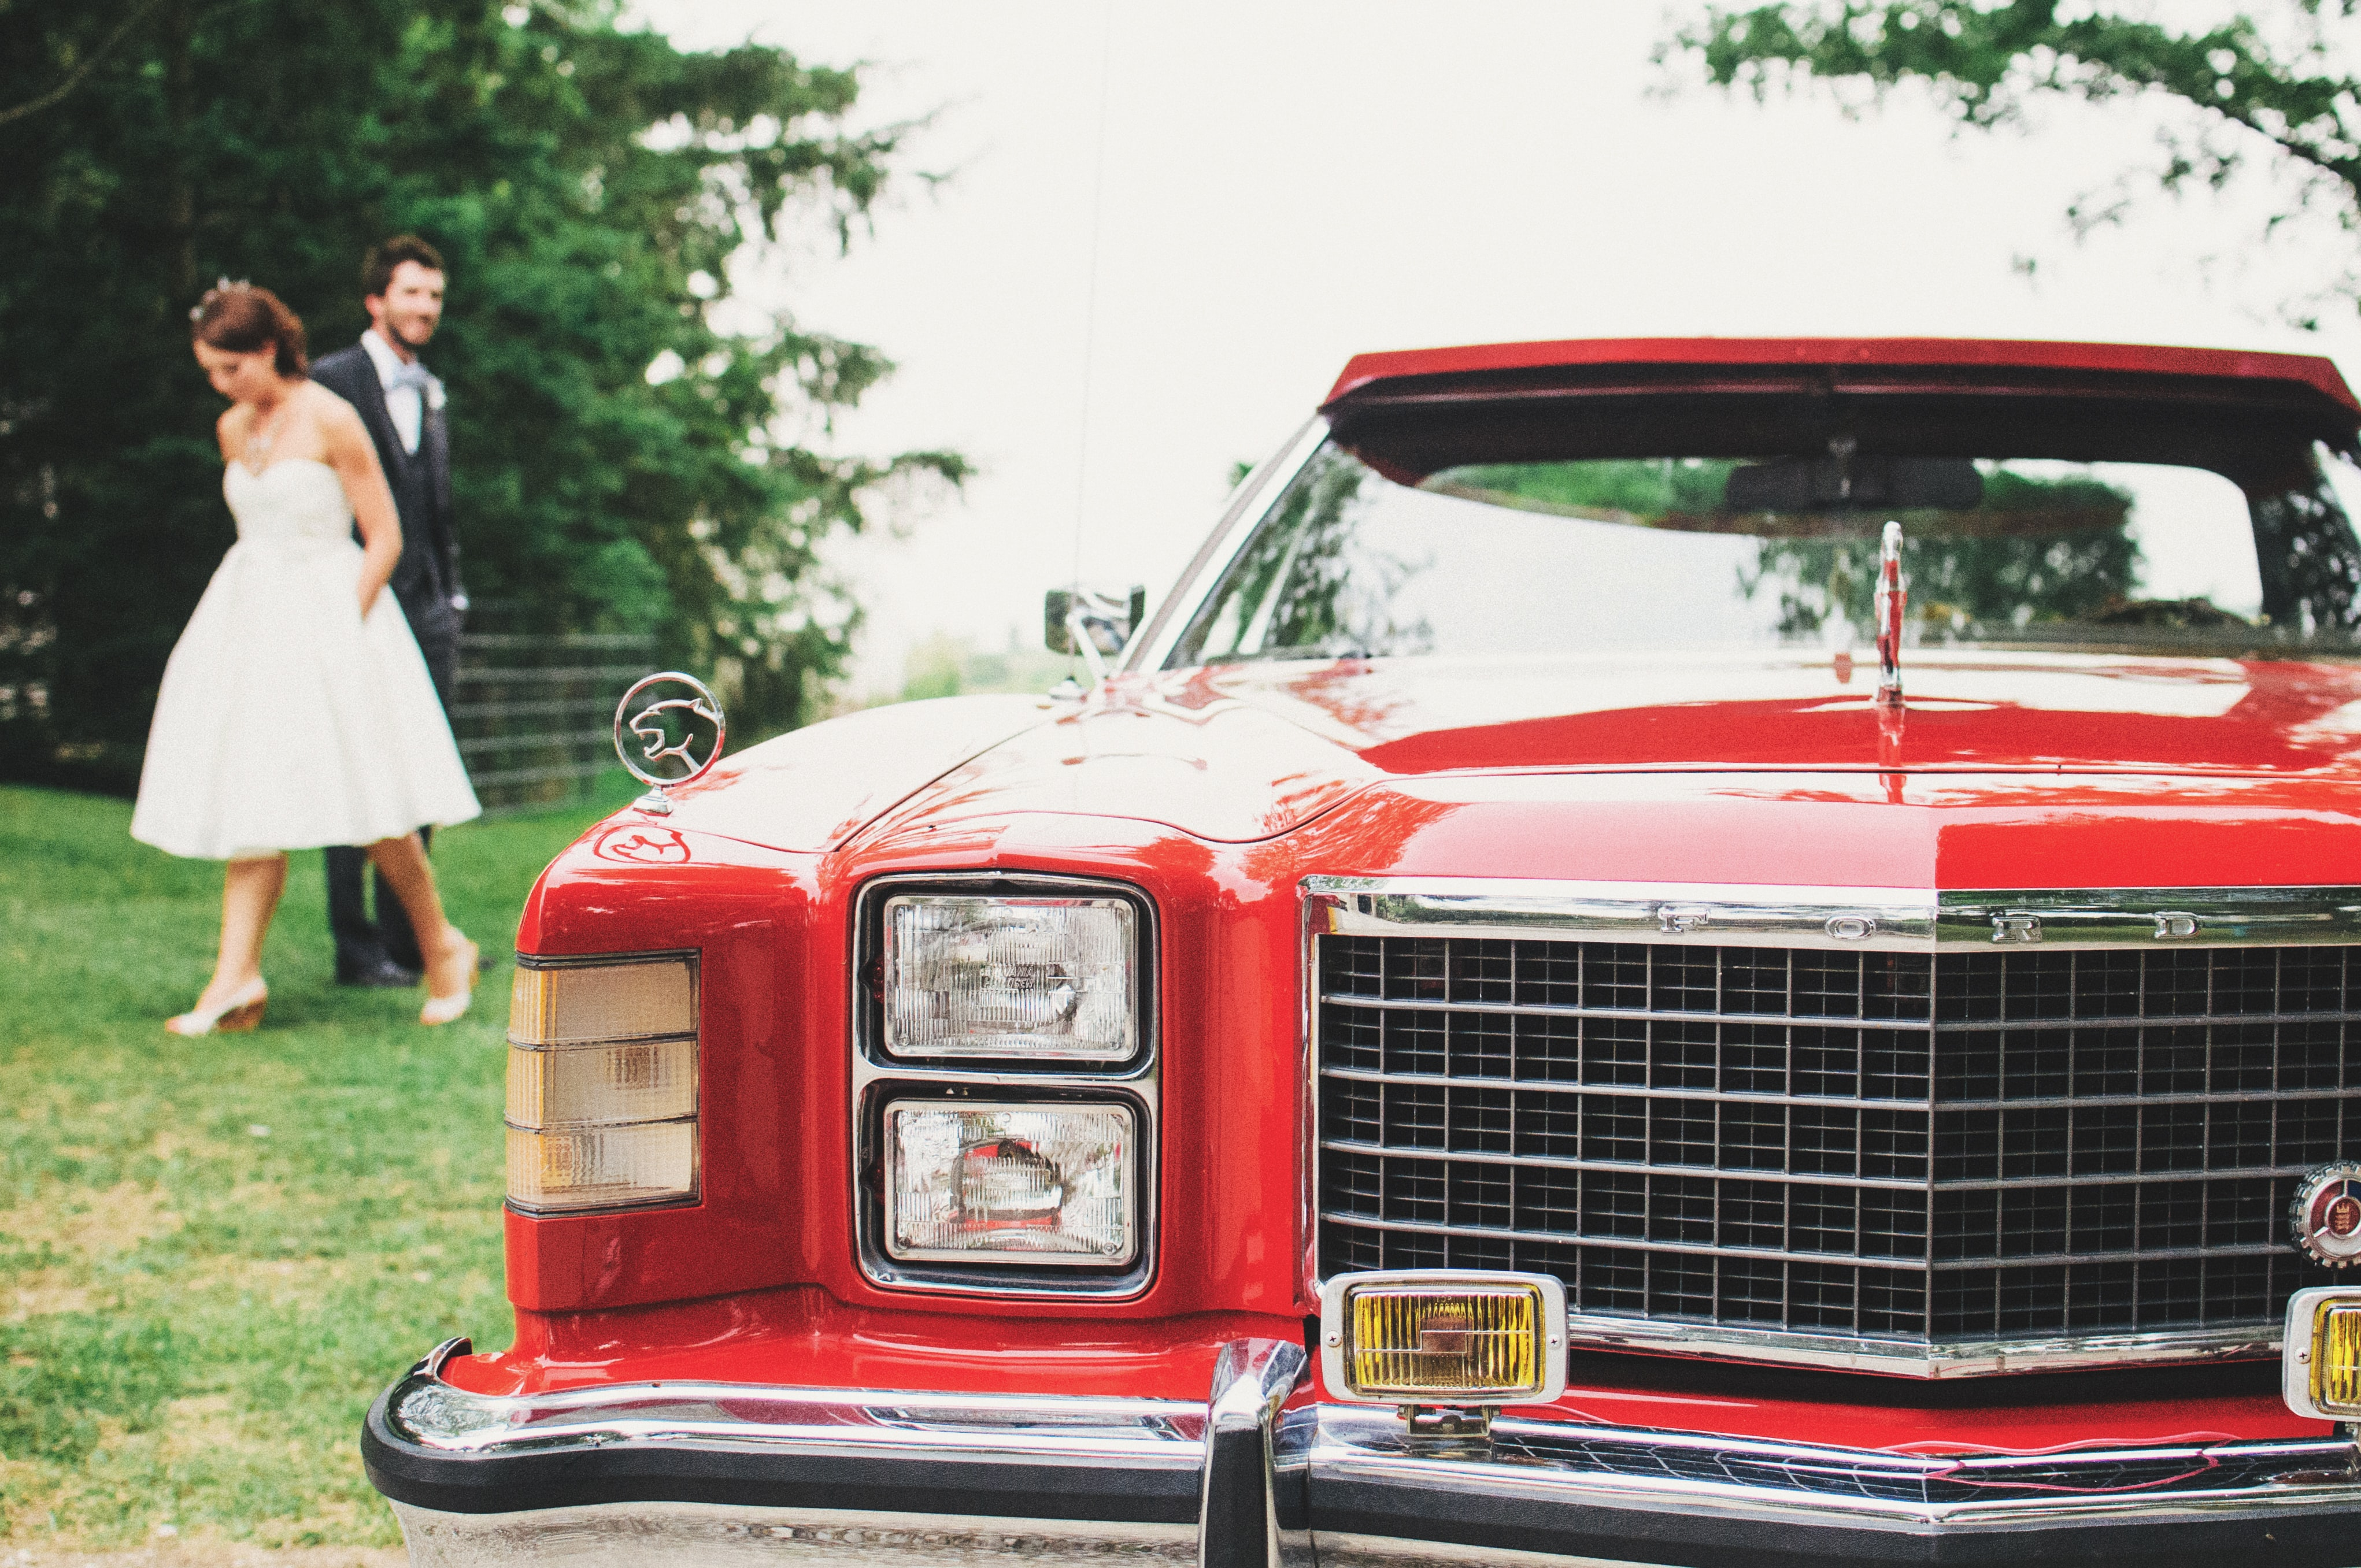 Retro red car at wedding with bride and groom in background